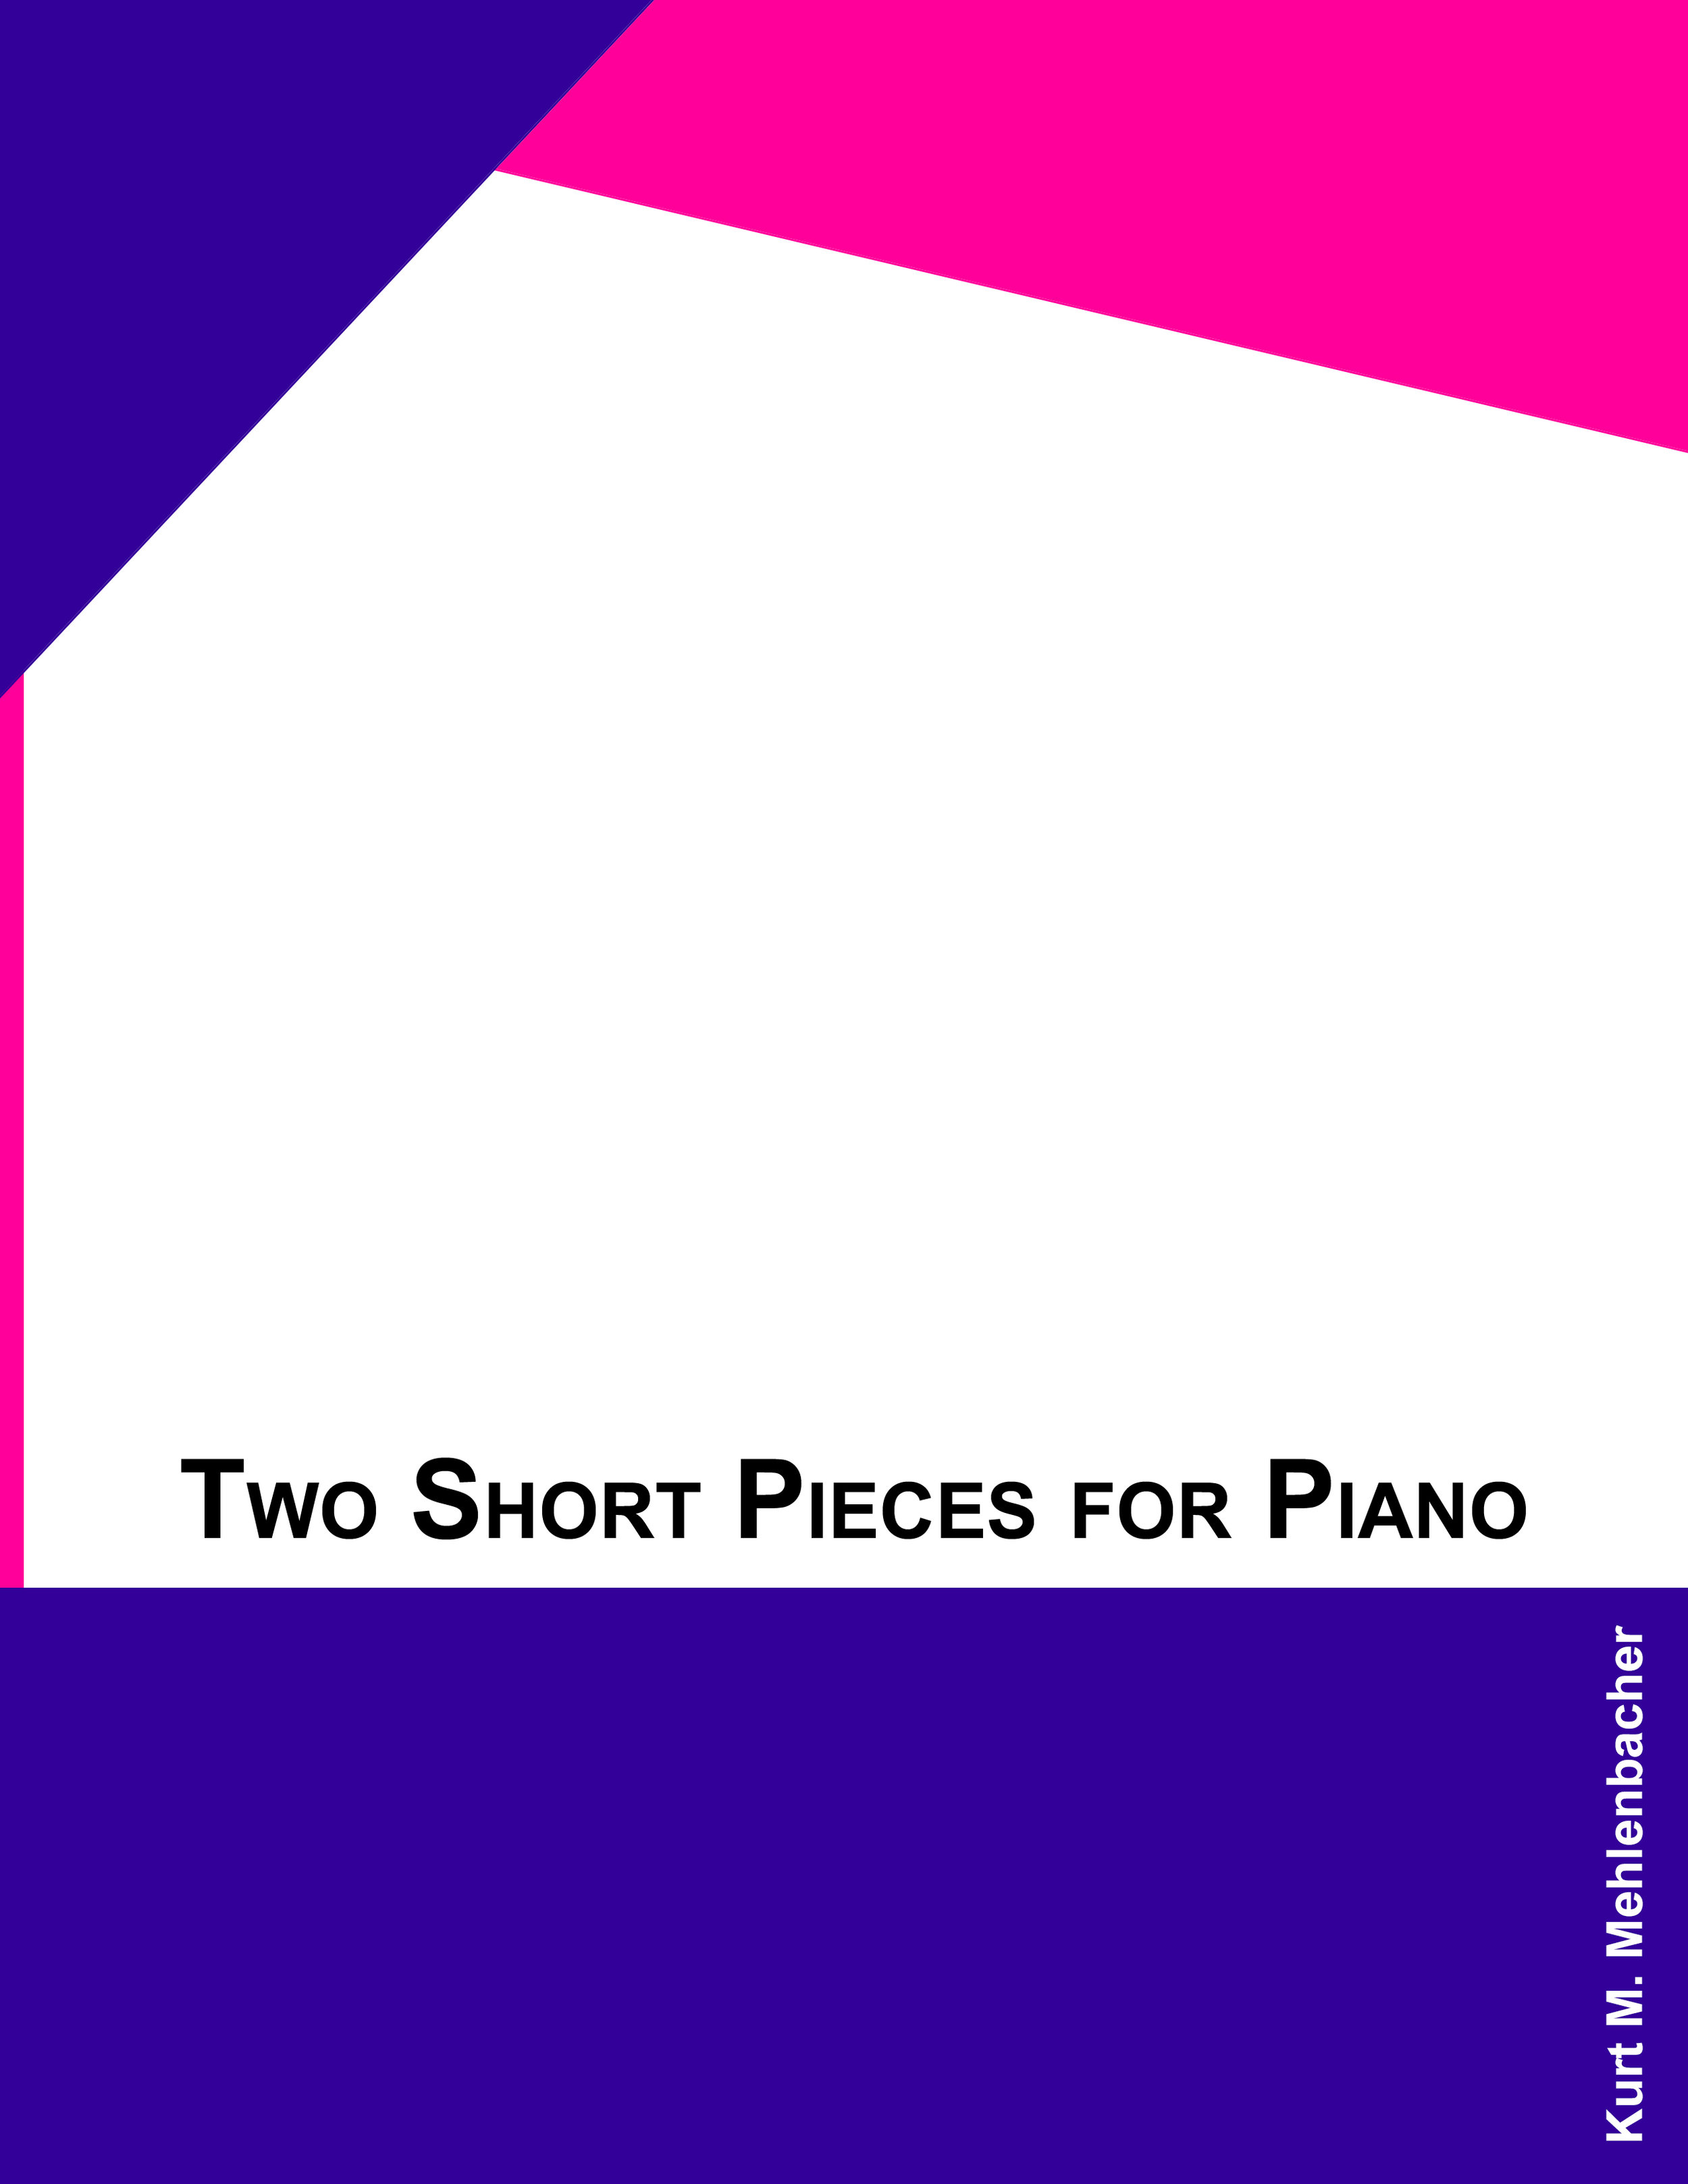 Two Short Pieces   for Piano        for solo piano (obviously)